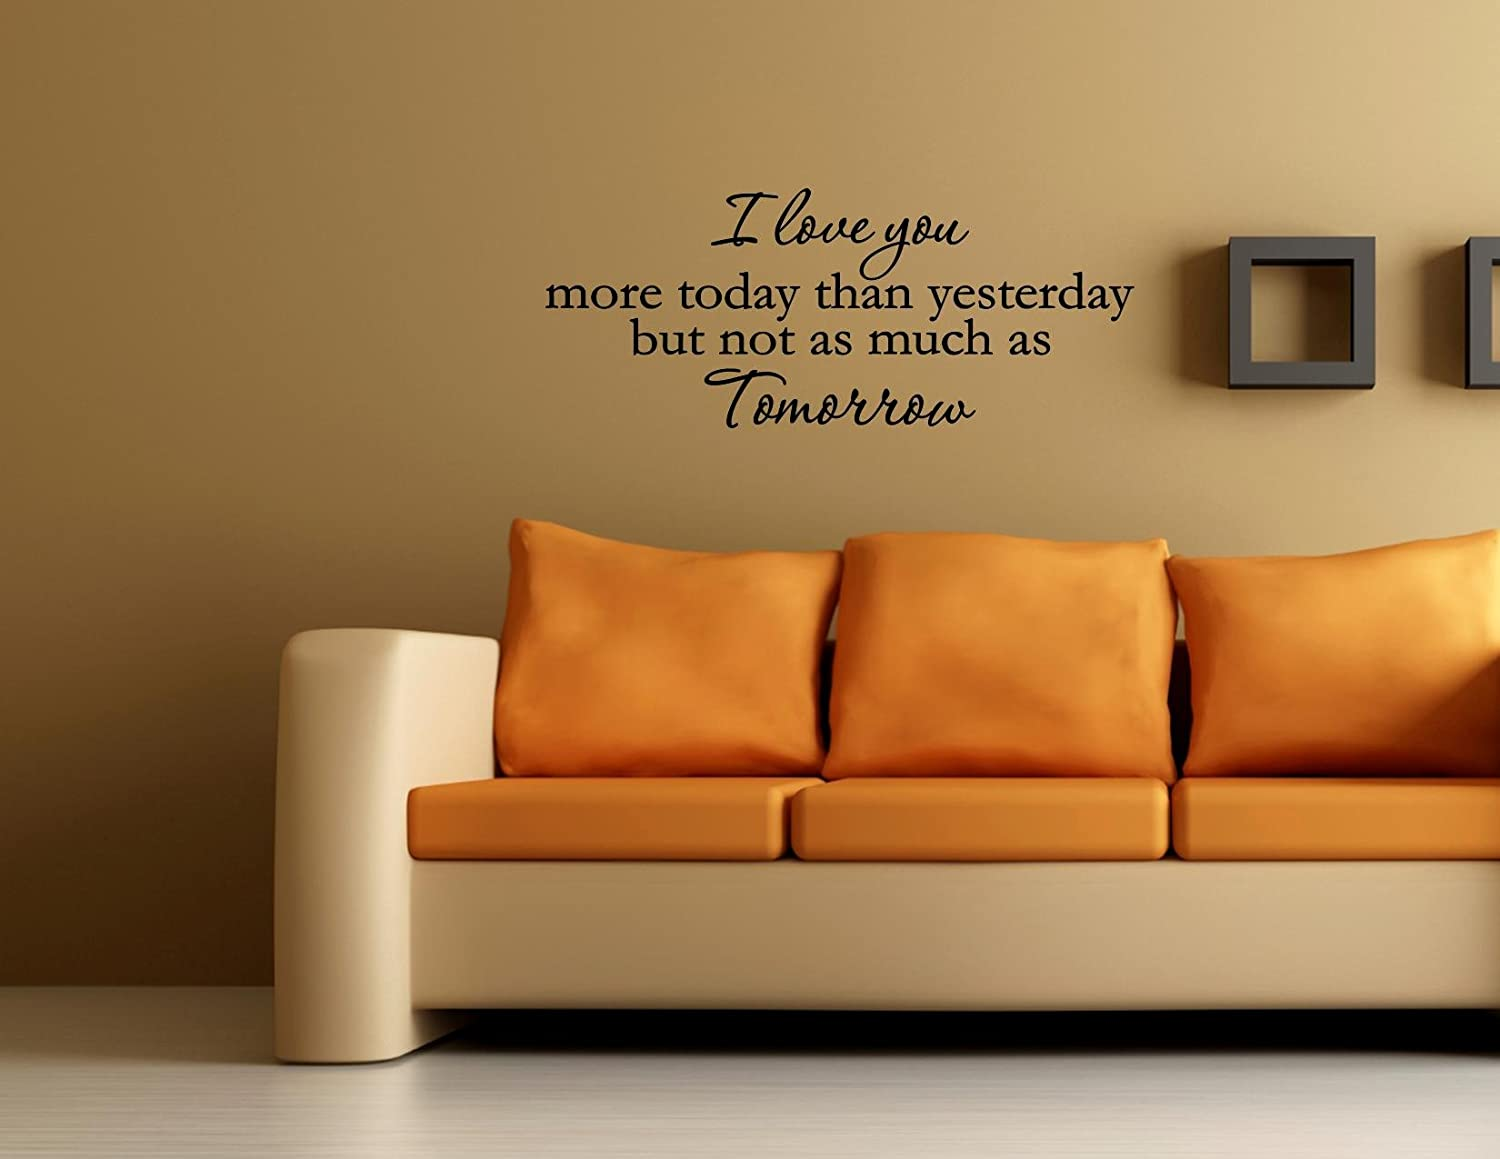 I Love You More Today Than Yesterday But Not As Much As Tomorrow Vinyl Wall Vinyl Wall Decal Amazon Com